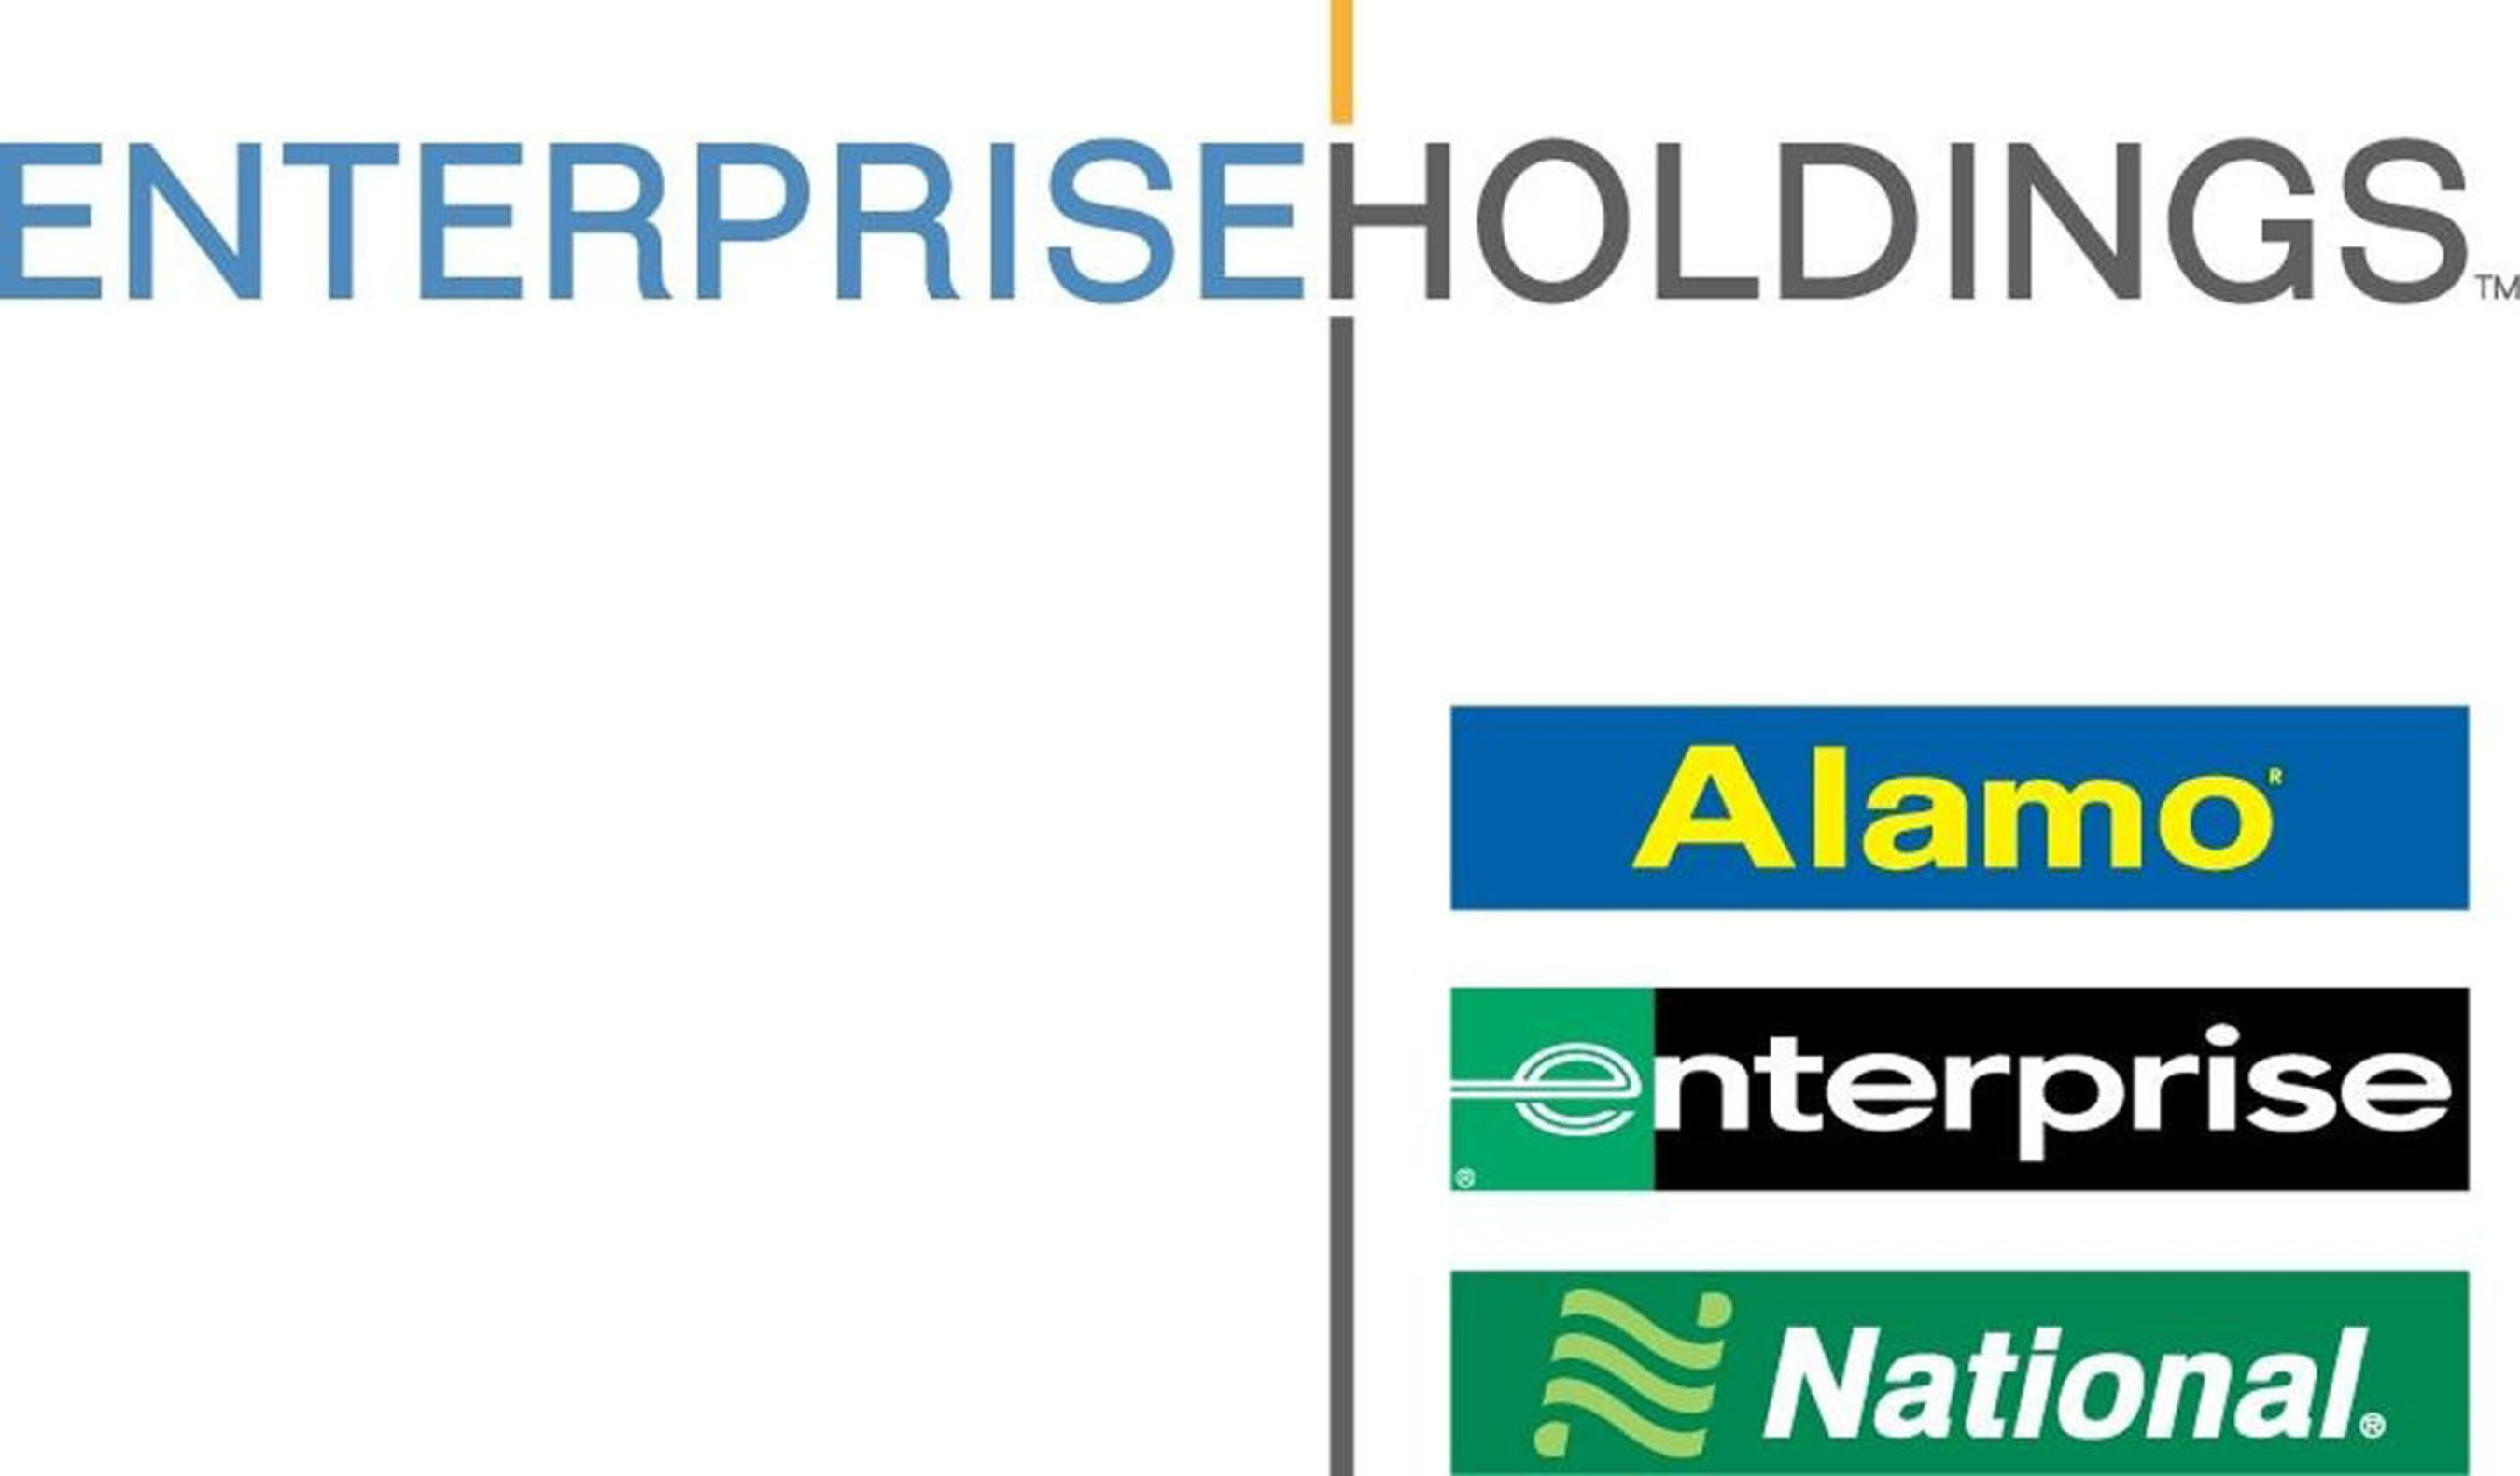 Enterprise Holdings Corporate Brands Logo